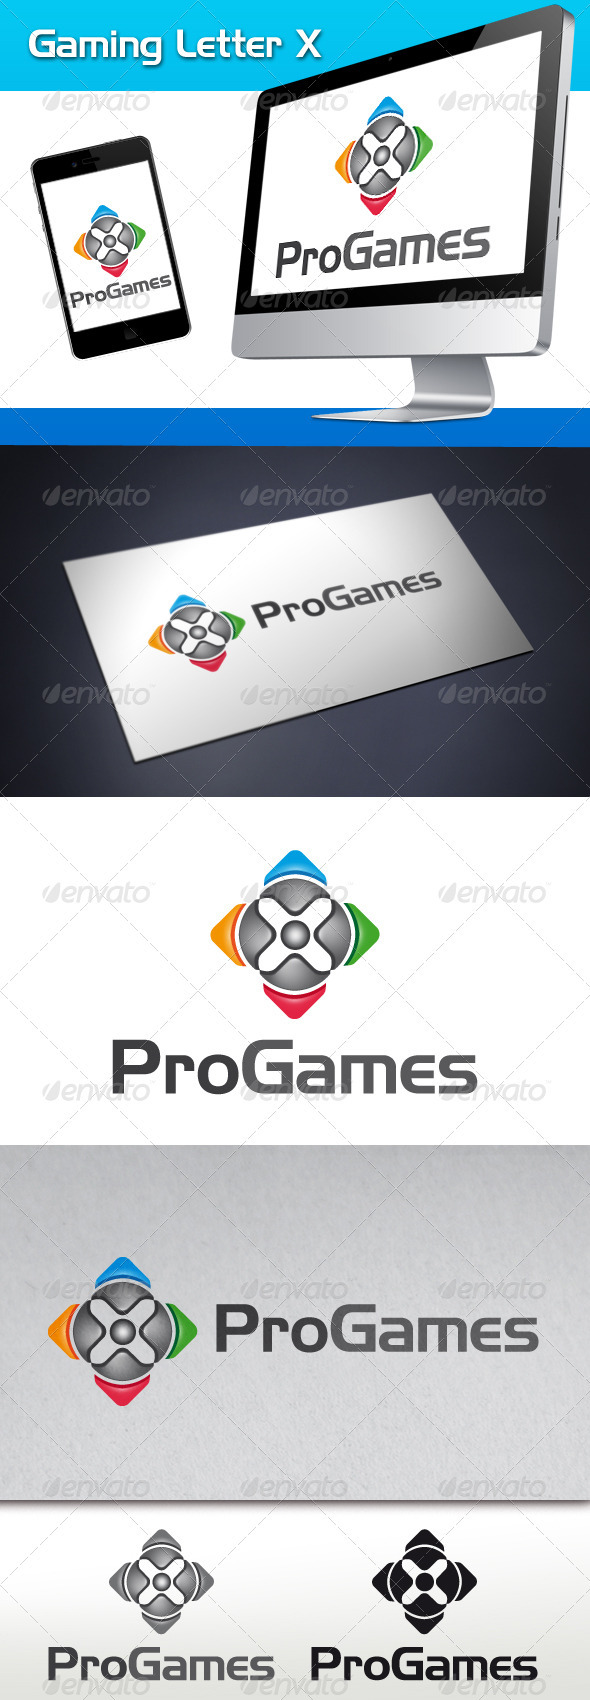 Gaming Letter X Logo Template